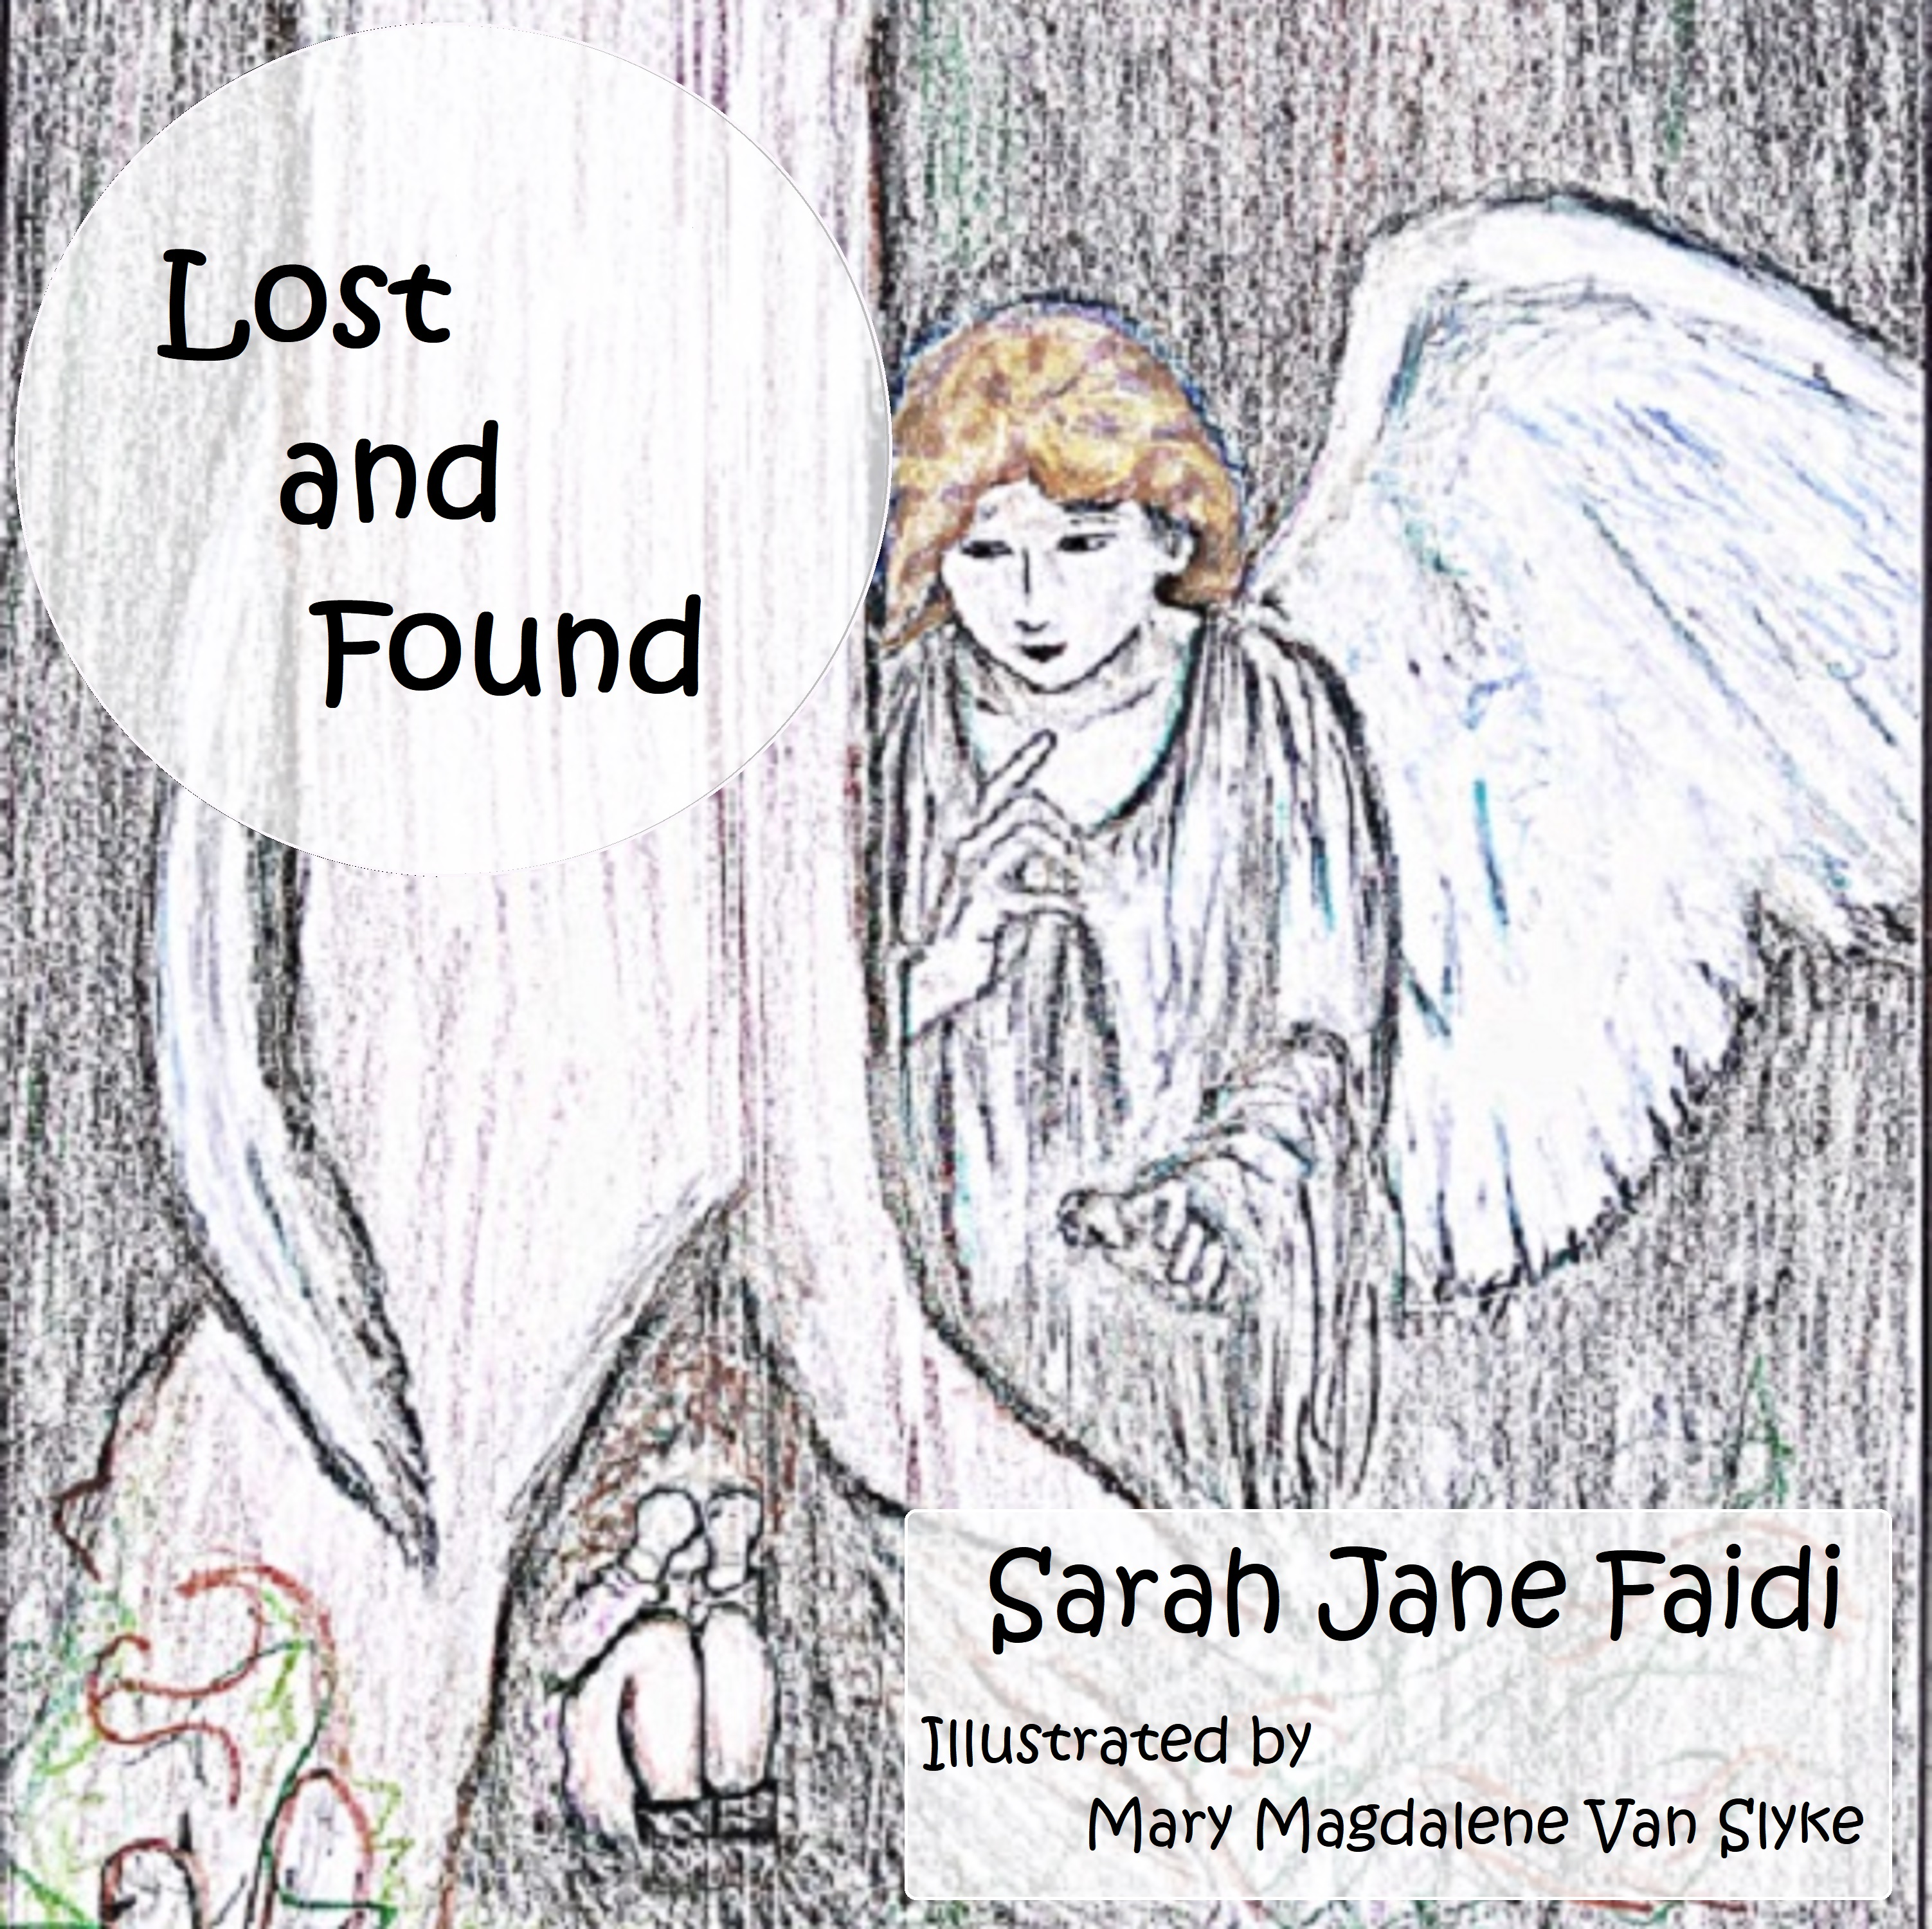 Lost and Found, authored by Sarah Jane Faidi